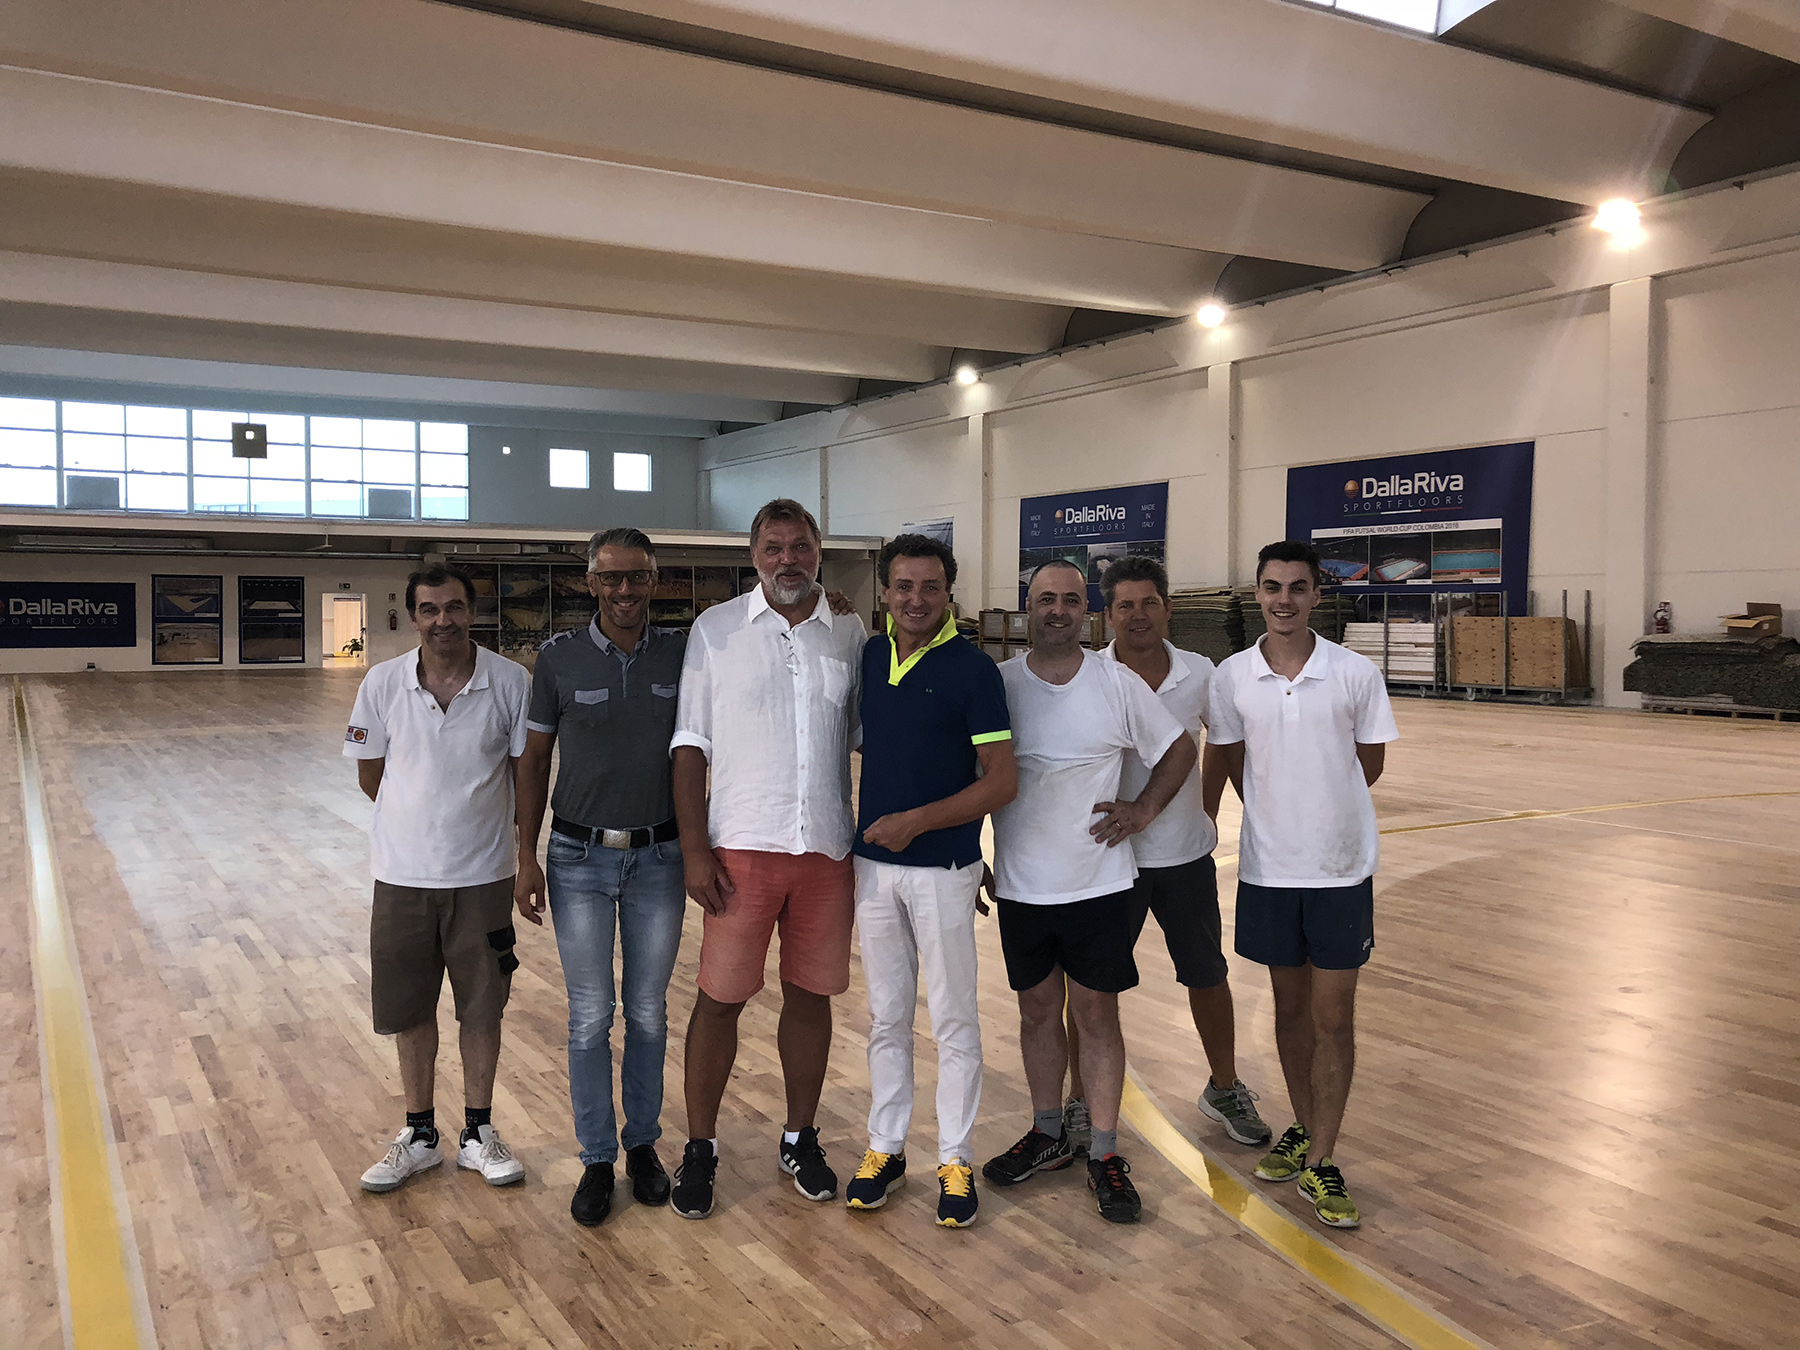 The Dalla Riva team with the manager of the Swedish 5-a-side Football Federation